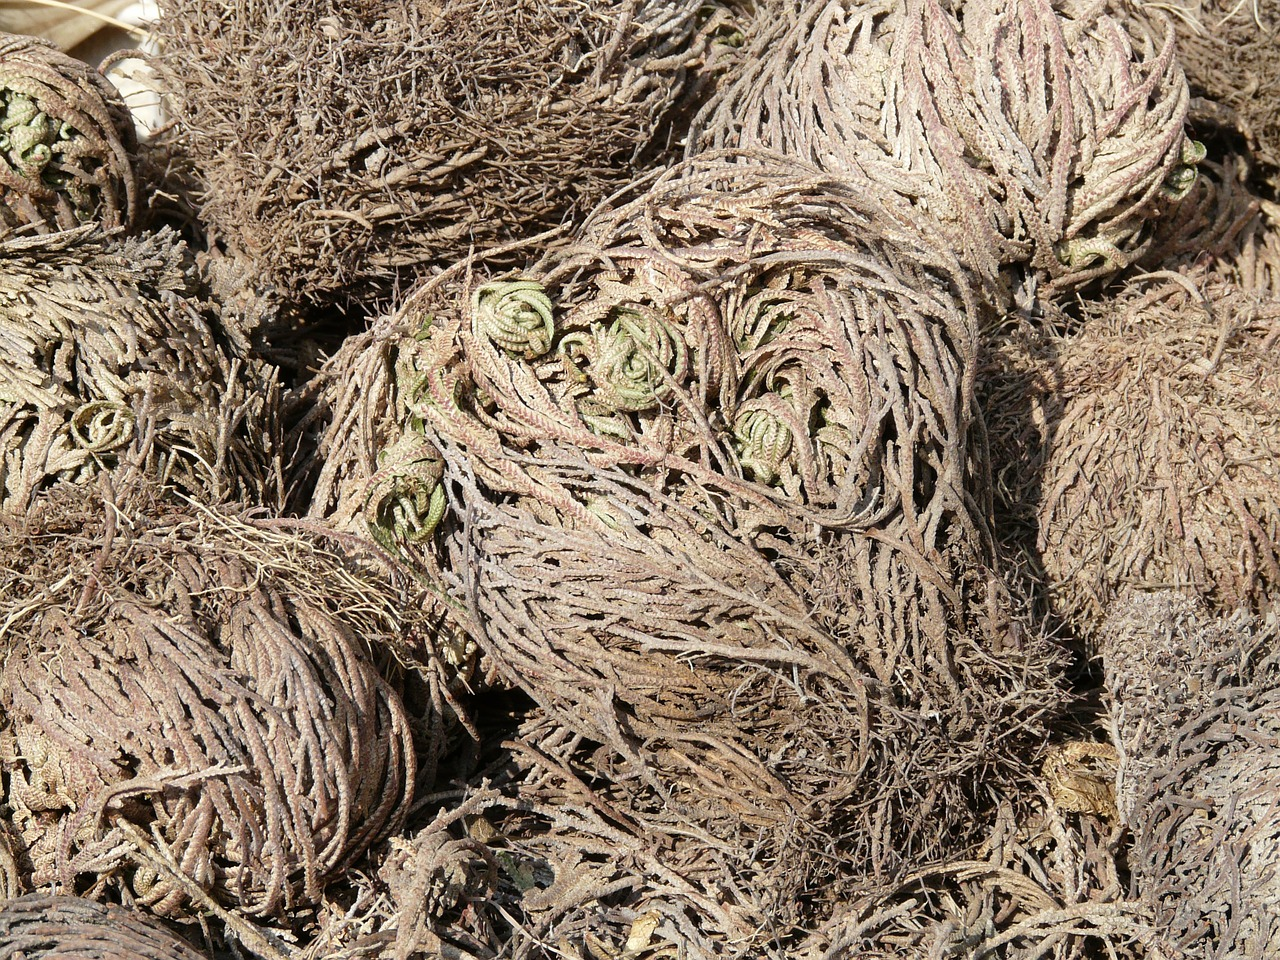 rose of jericho anastatica hierochuntica desert rose free photo